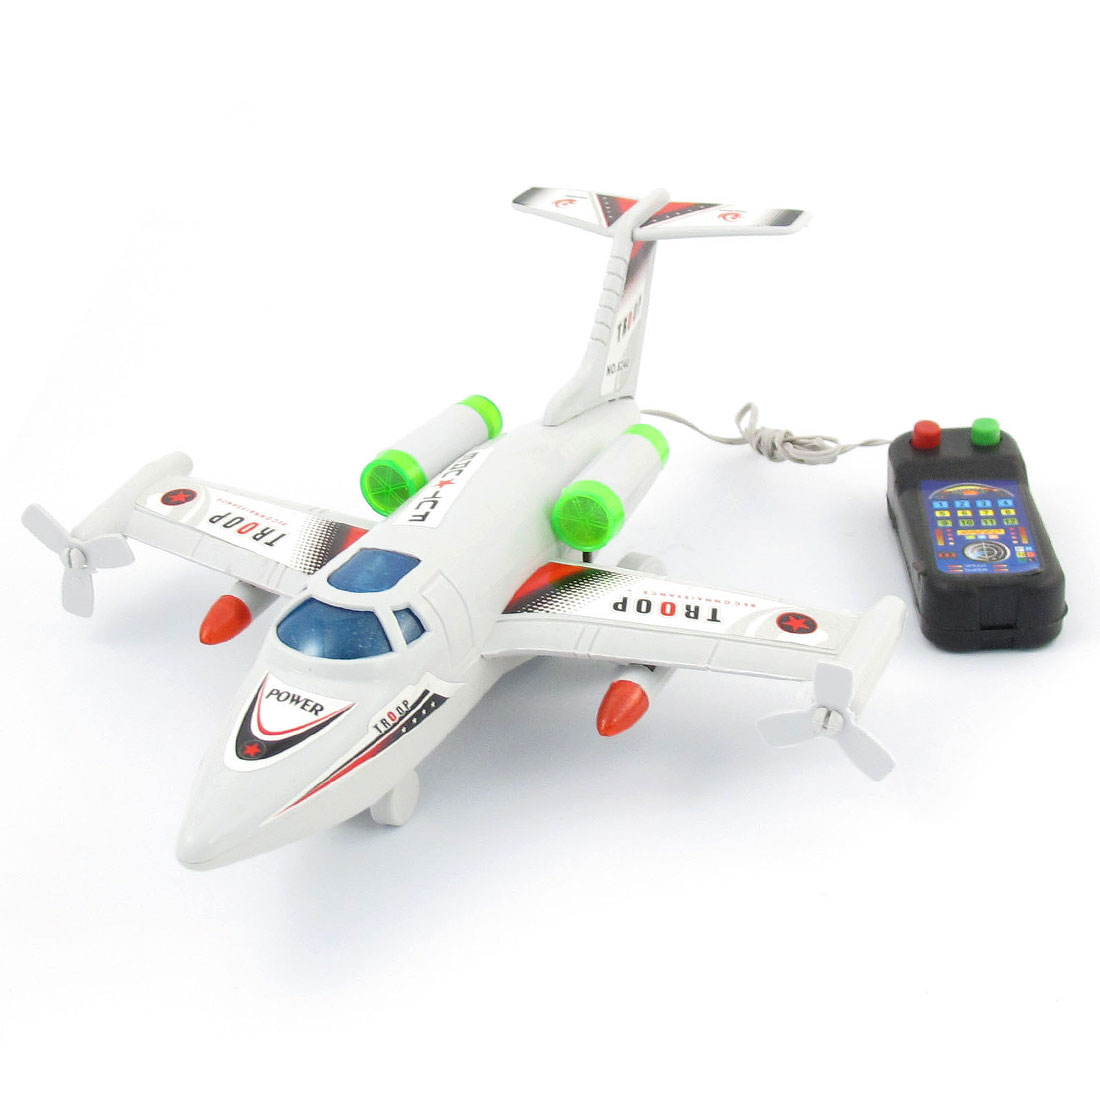 Warm White LED Light Remote Control Airplane Toy Pale Gray for Kids